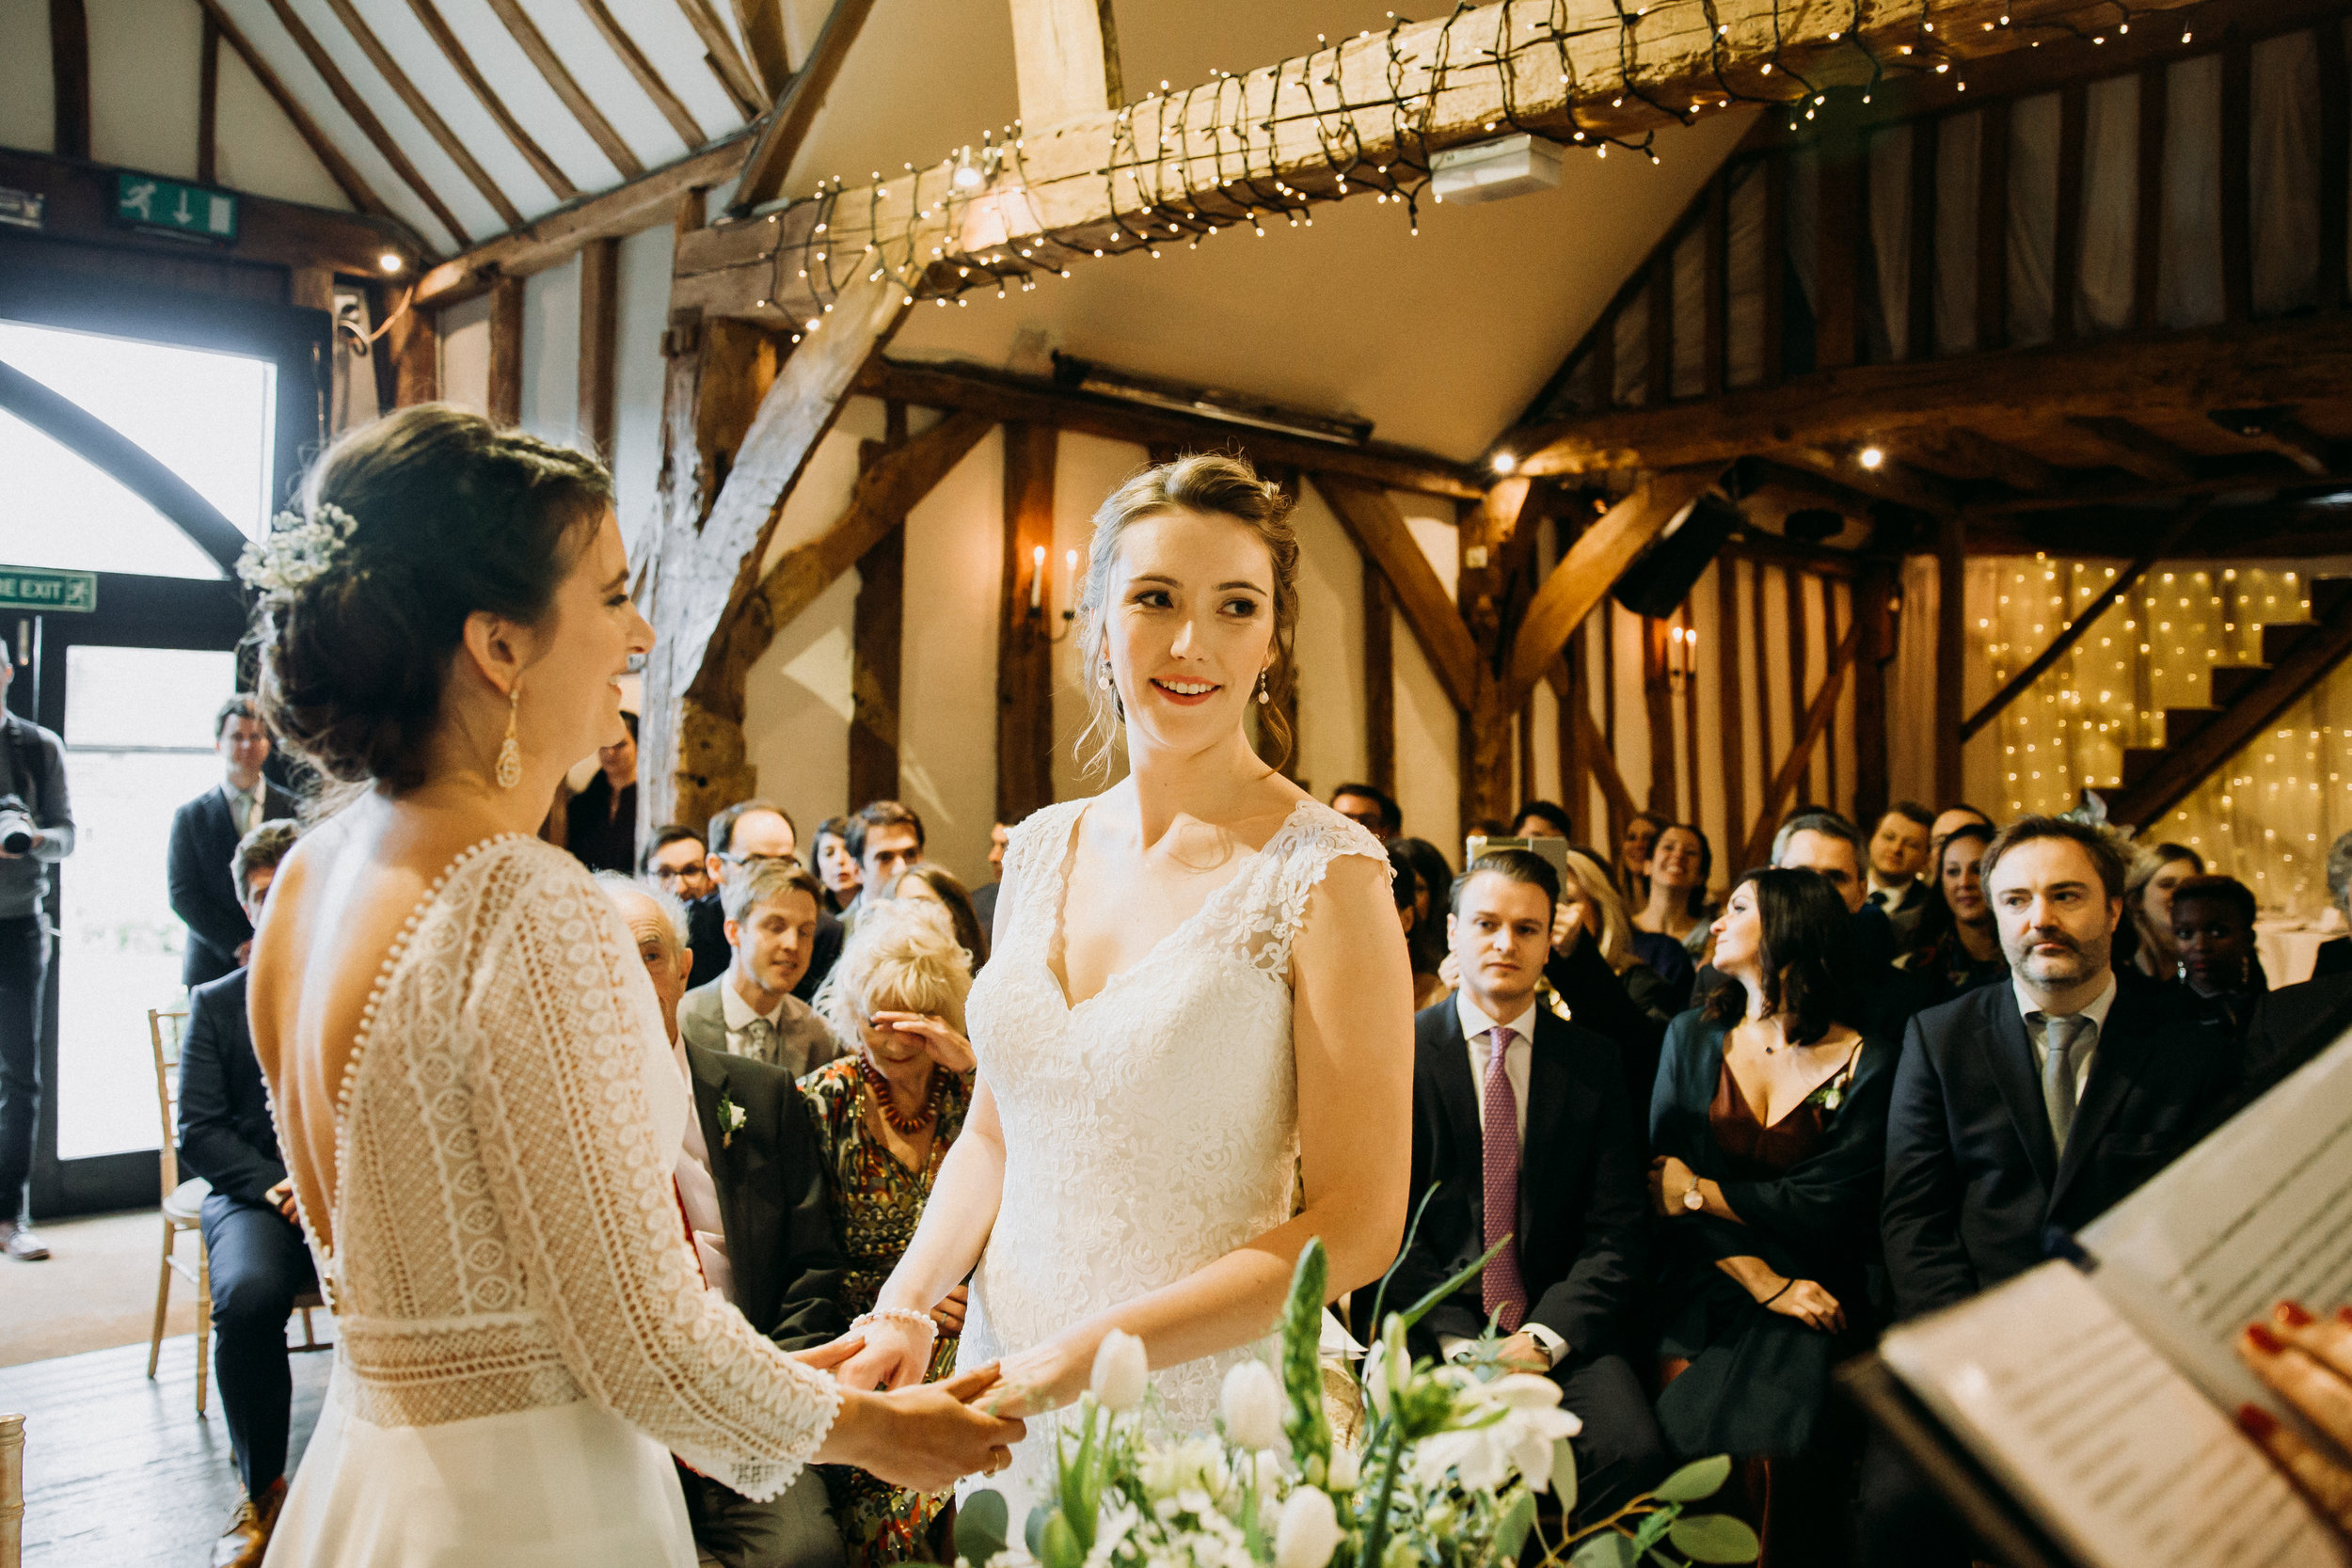 Vanessa & Hannah wedding ceremony at Old Luxter's Barn at The Chilterns wedding